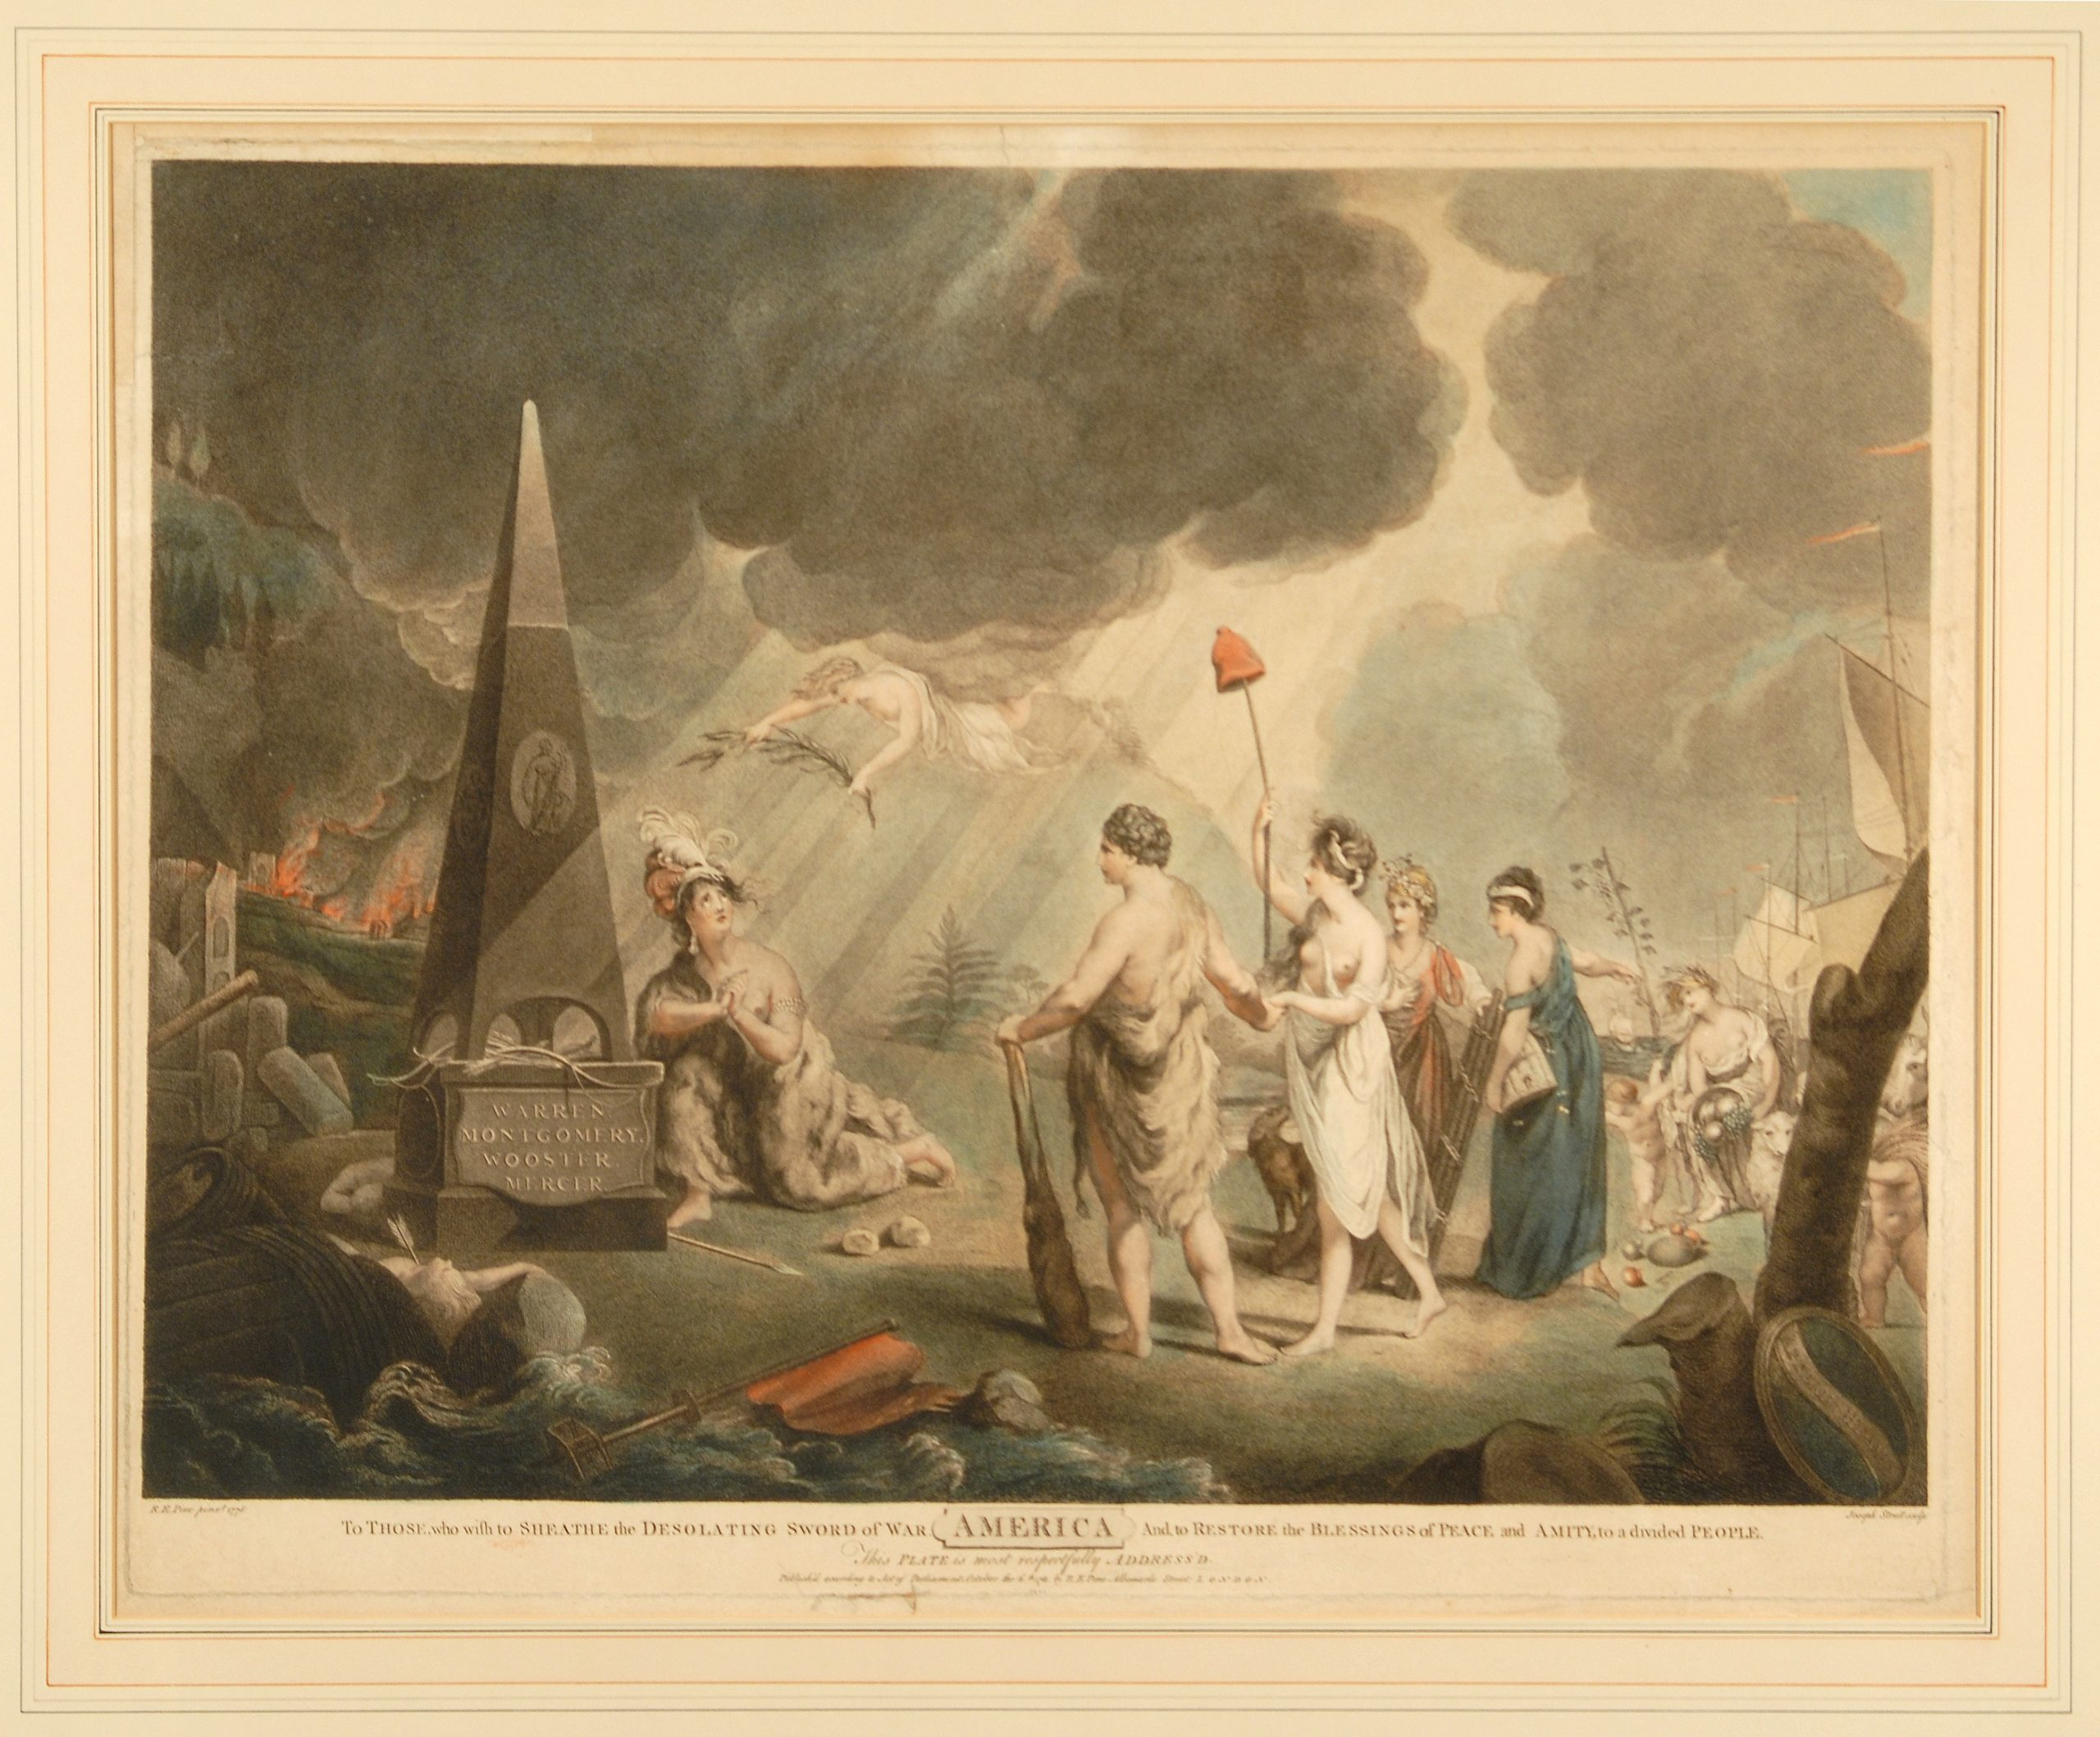 This allegorical print is one of ten great Revolutionary War prints.